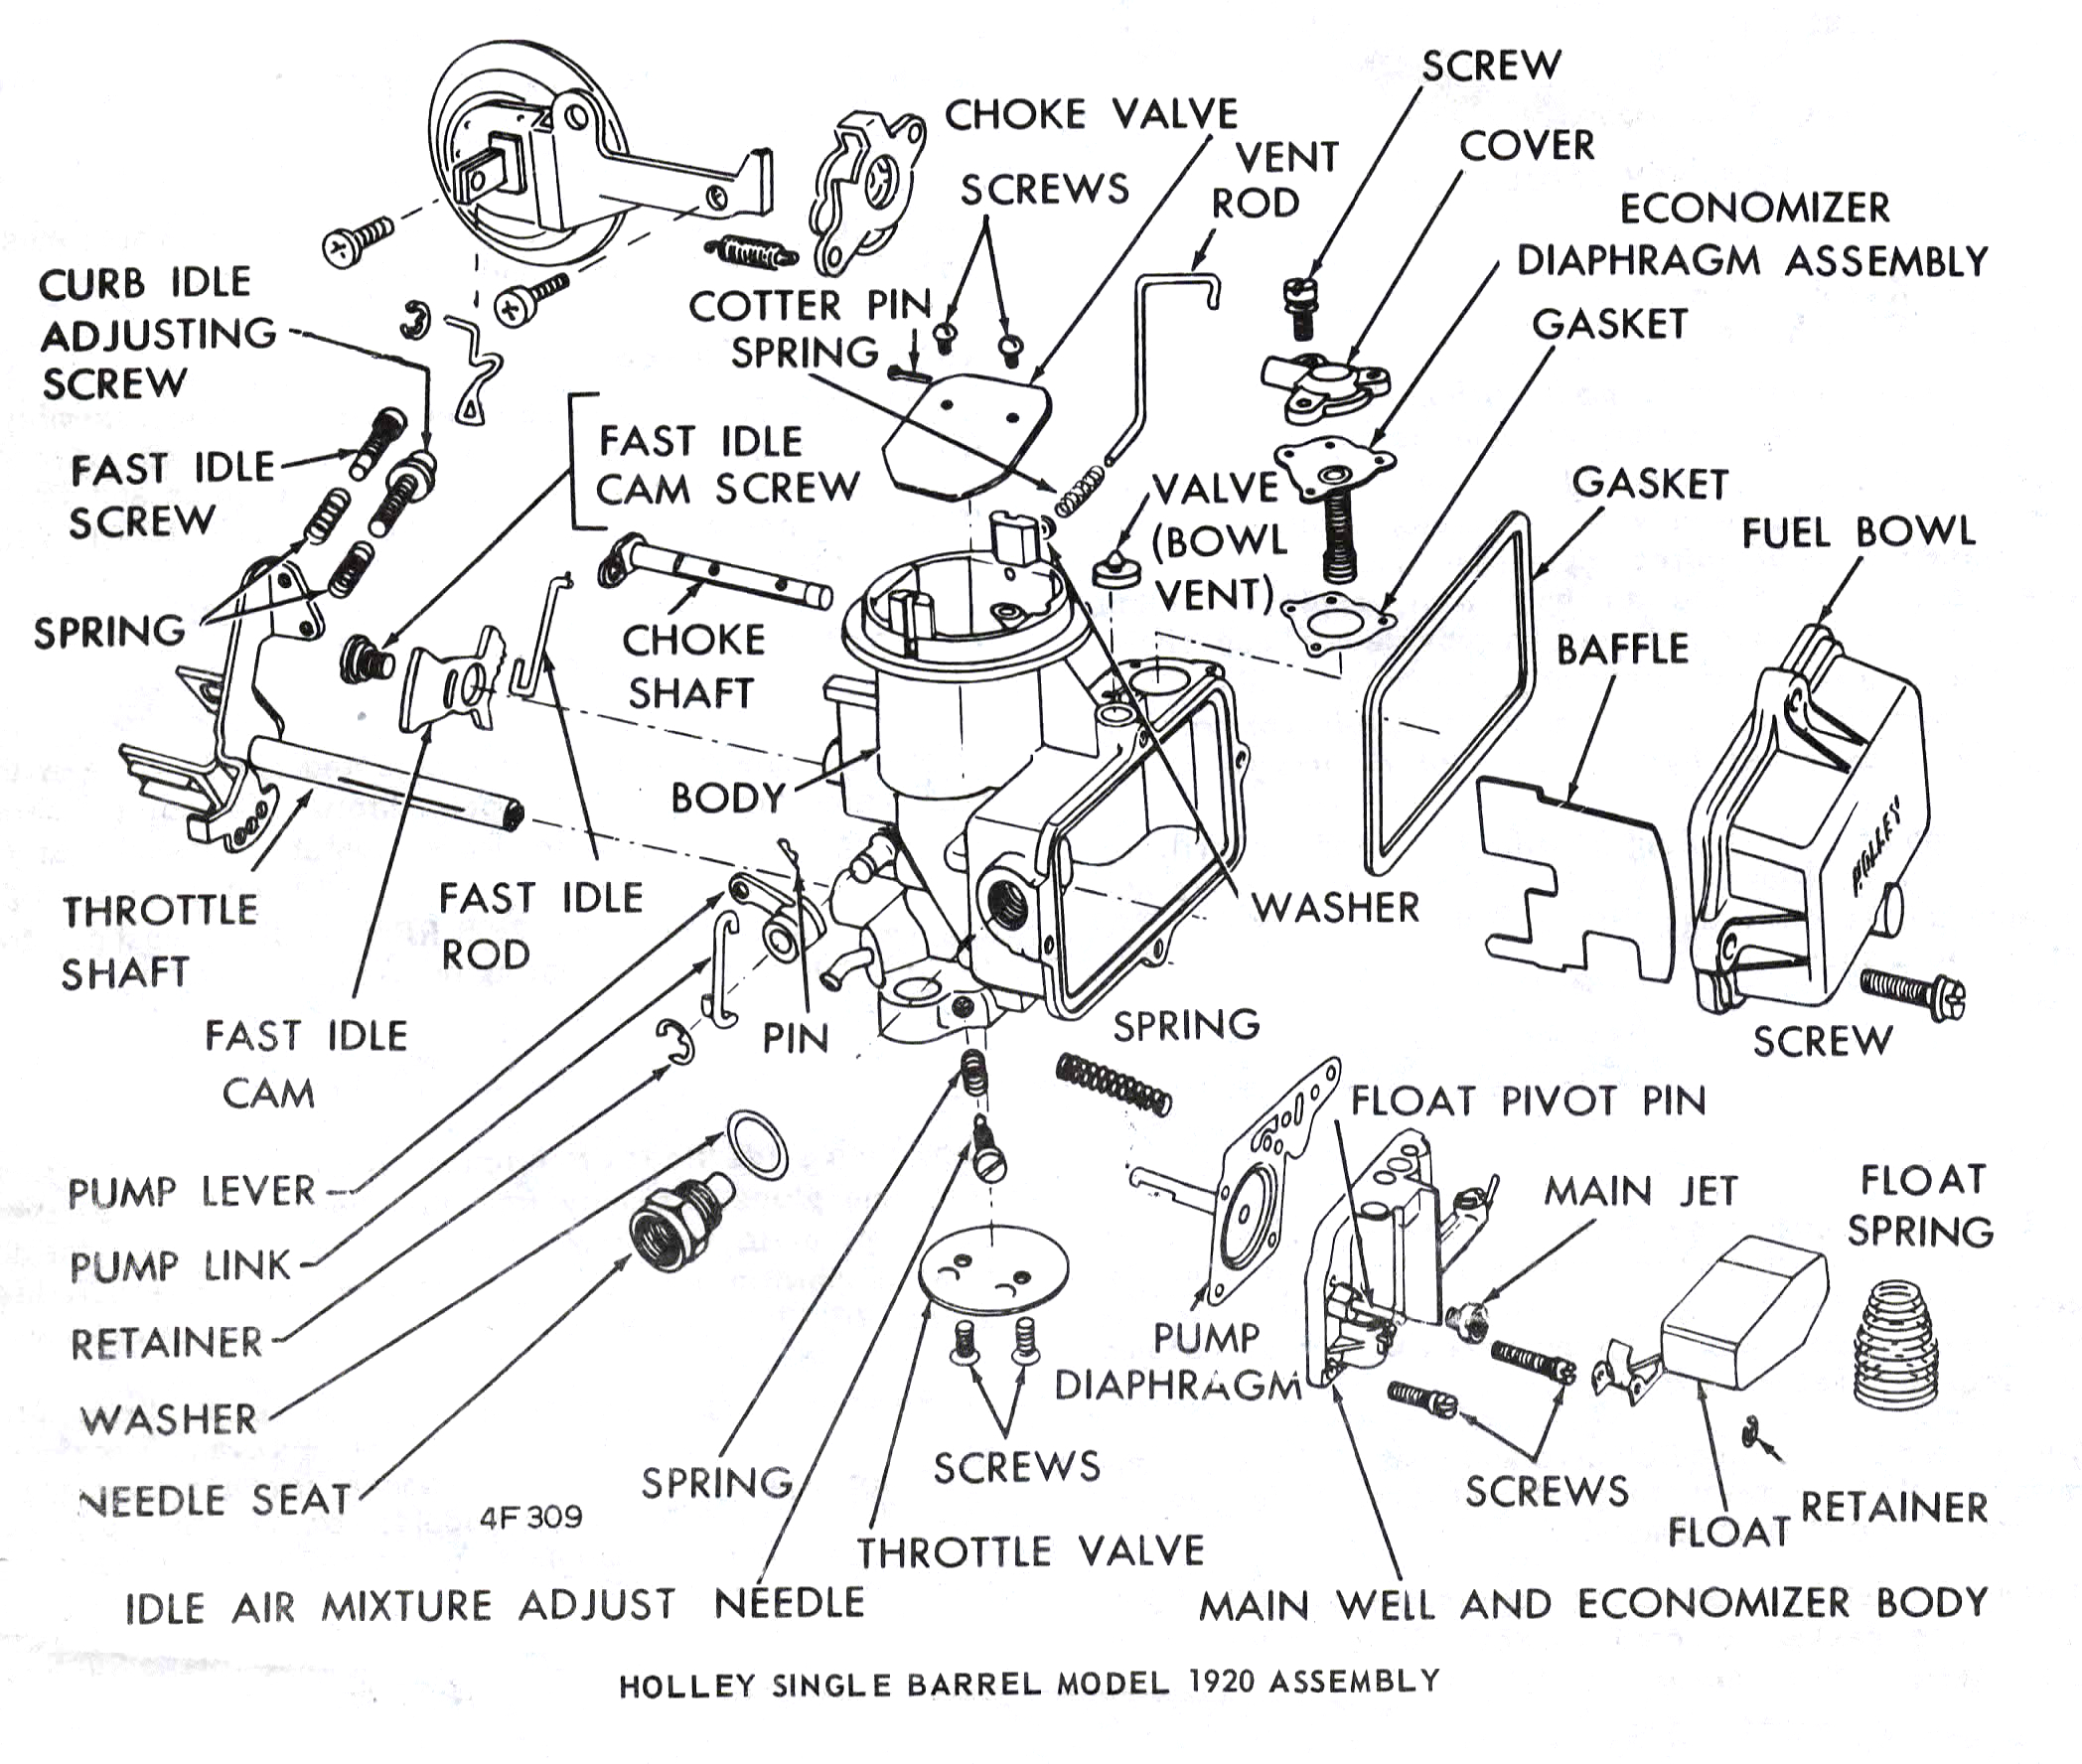 rochester 4 barrel carburetor diagram wiring 2004 dodge ram 2500 holley 1920 exploded view